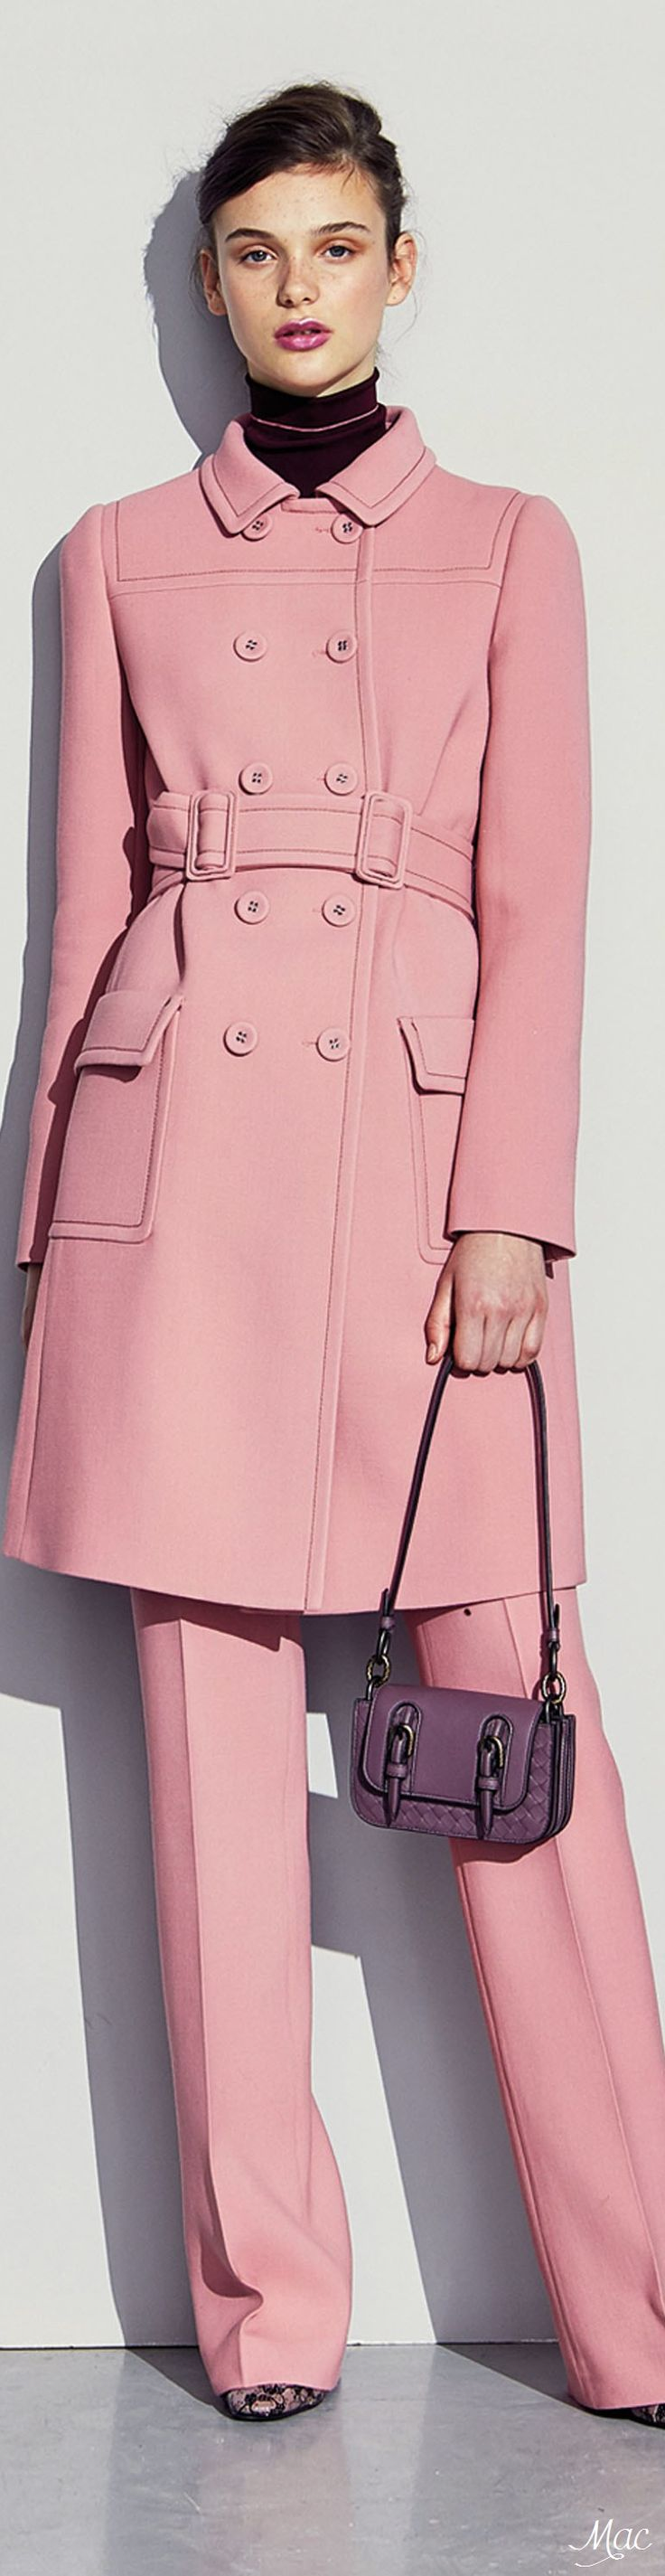 650 best fasion images on Pinterest | Outfits, Beautiful clothes and ...